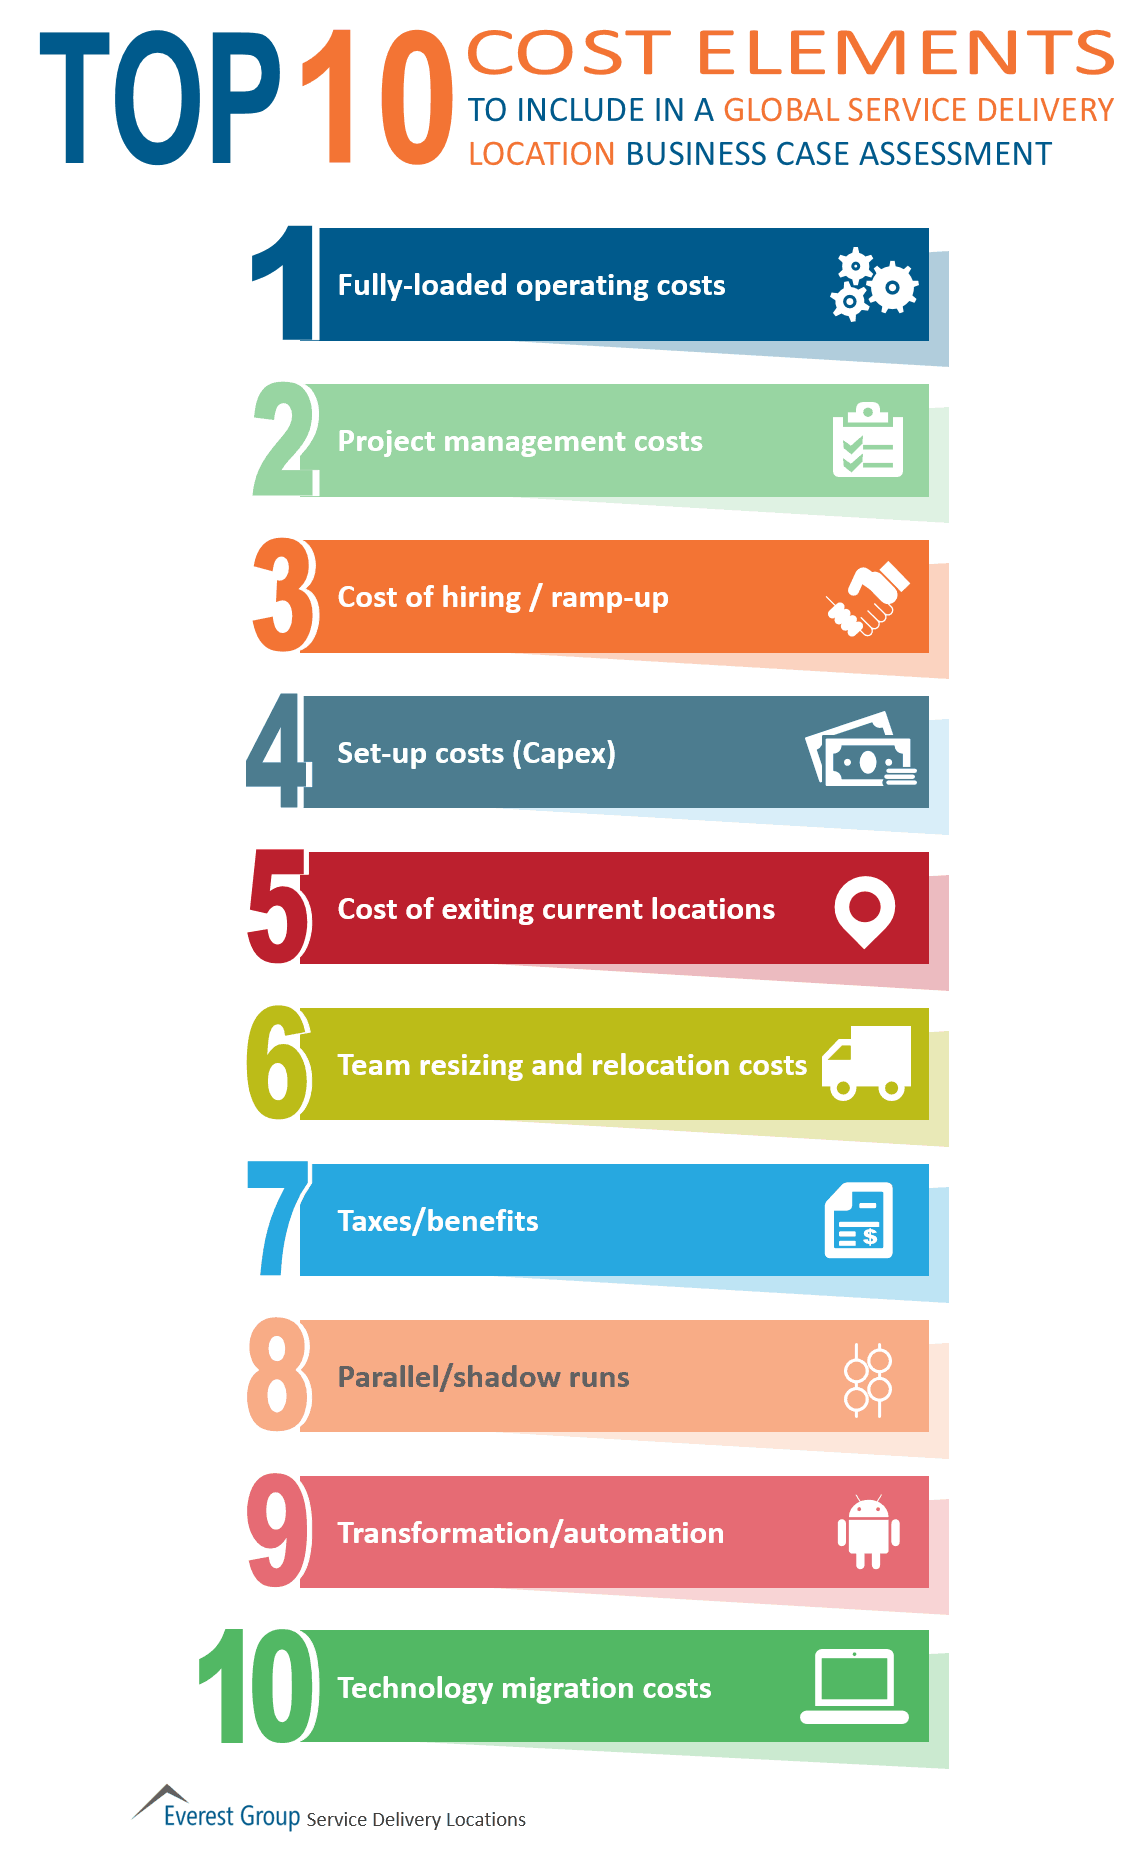 top 10 cost elements biz case